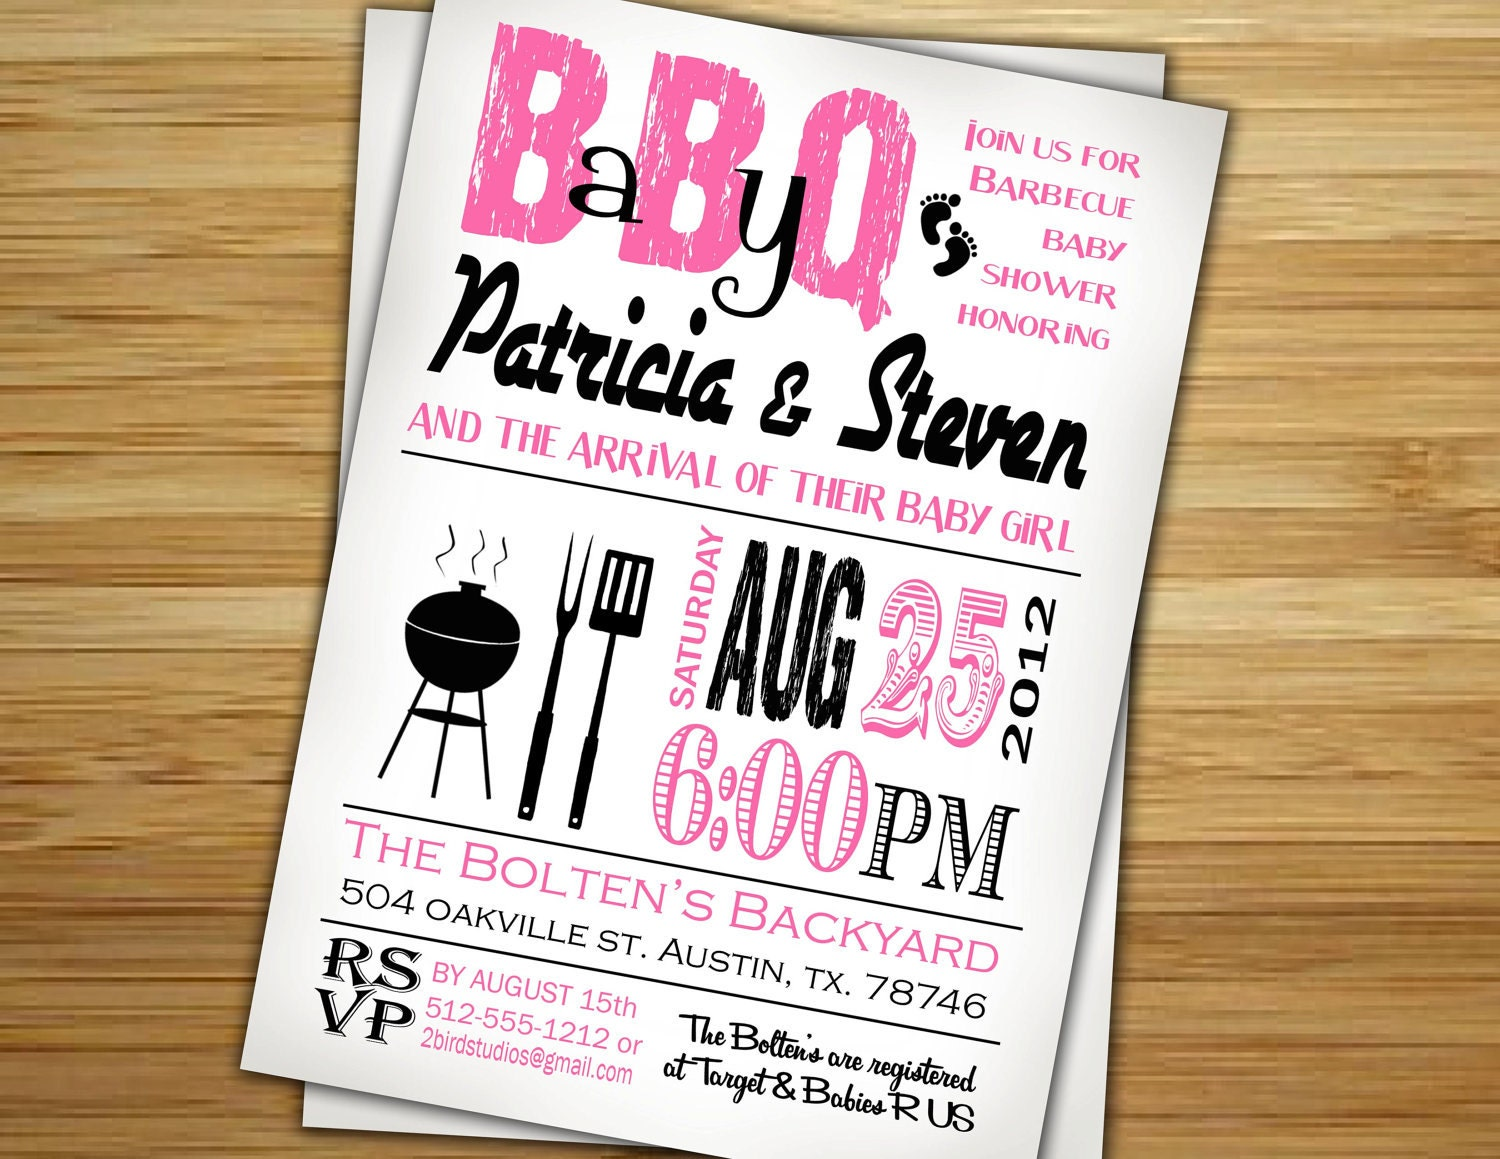 bbq baby shower images frompo